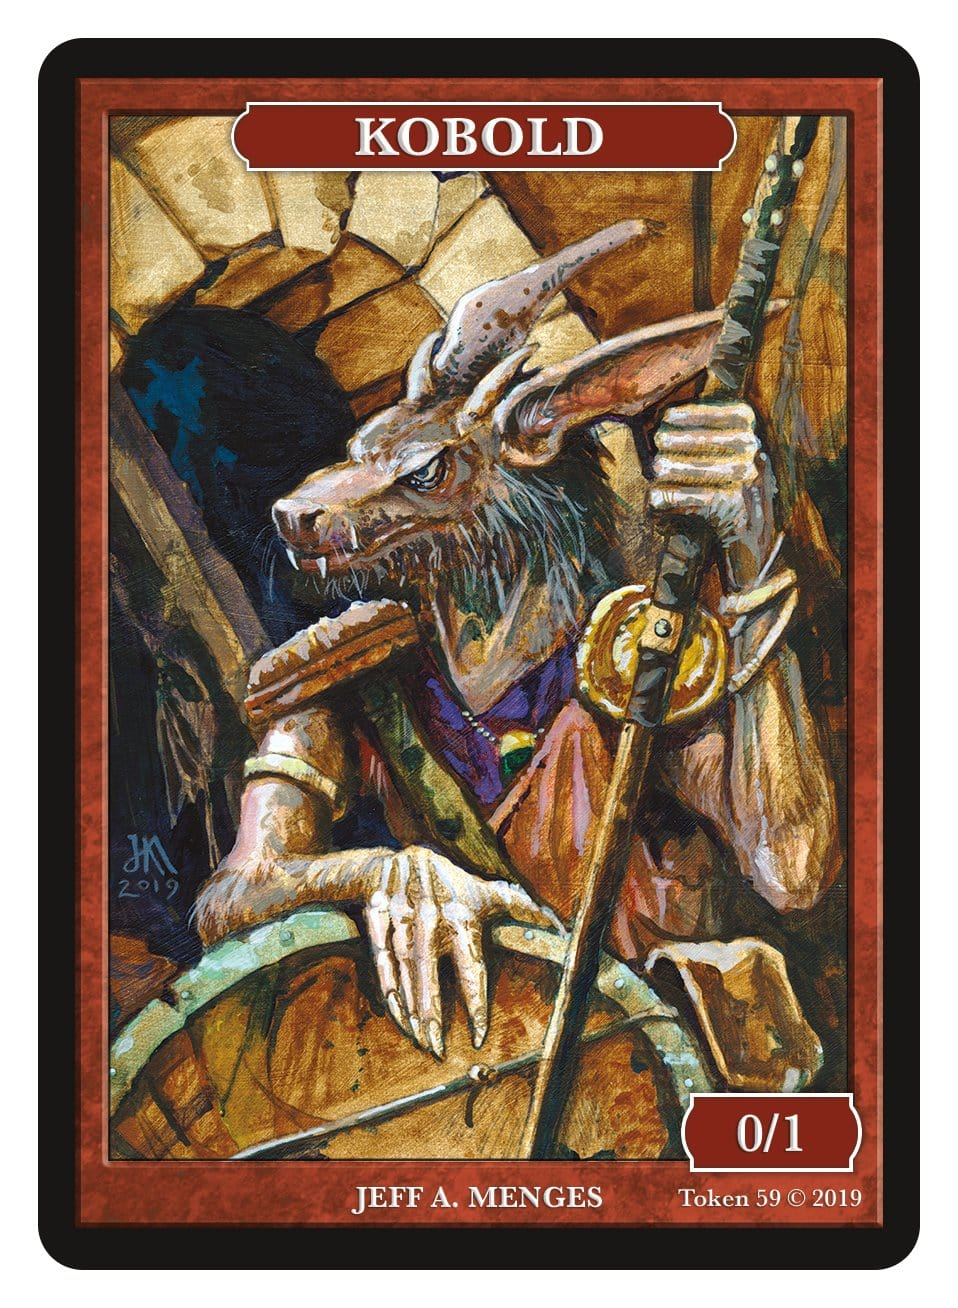 Kobold Token (0/1) by Jeff A. Menges